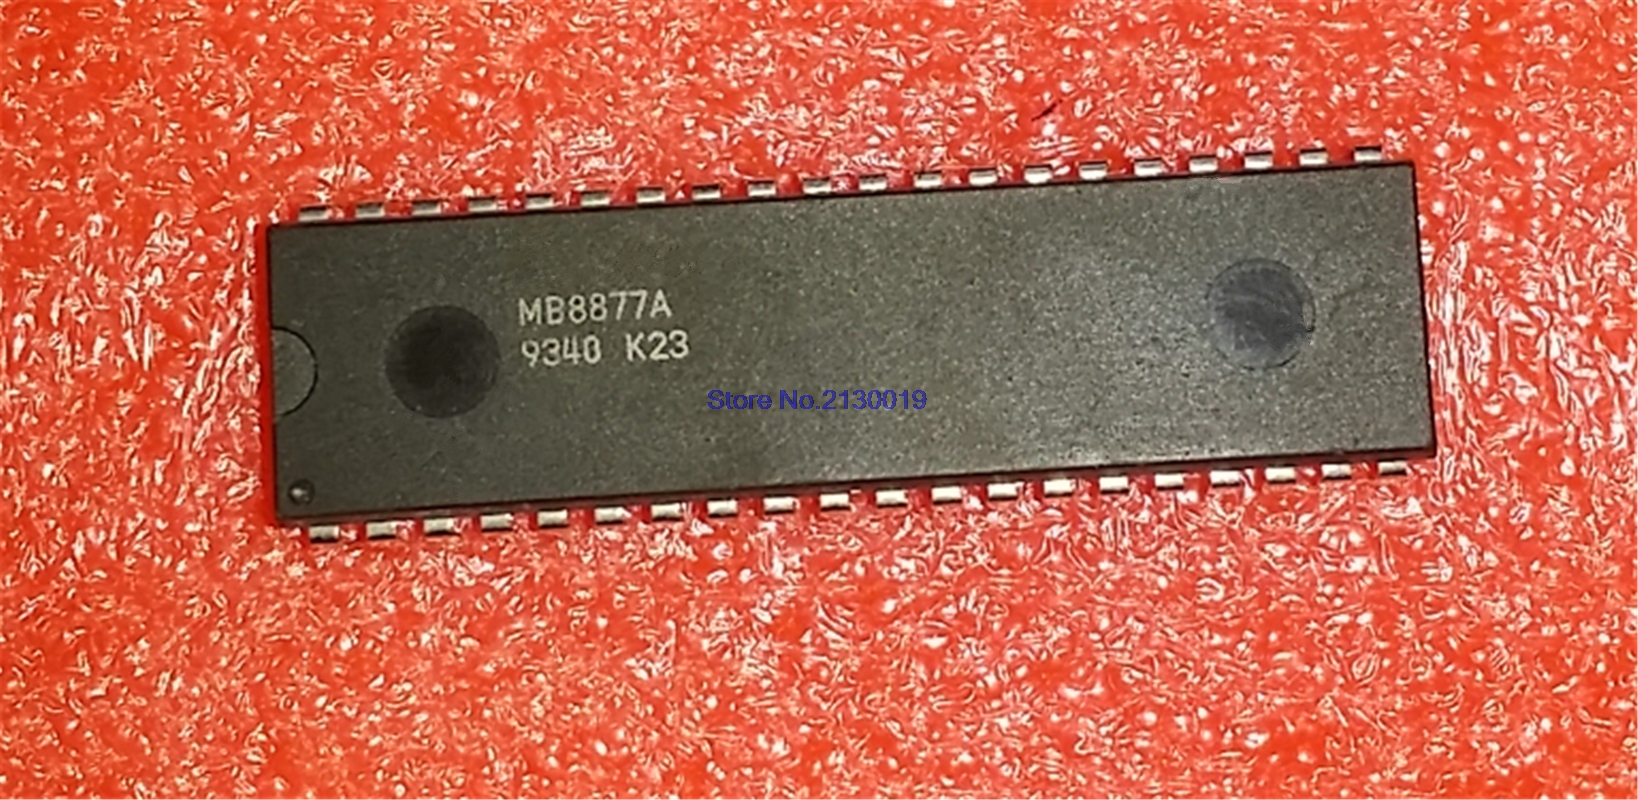 1pcs/lot MB8877A MB8877 DIP-40